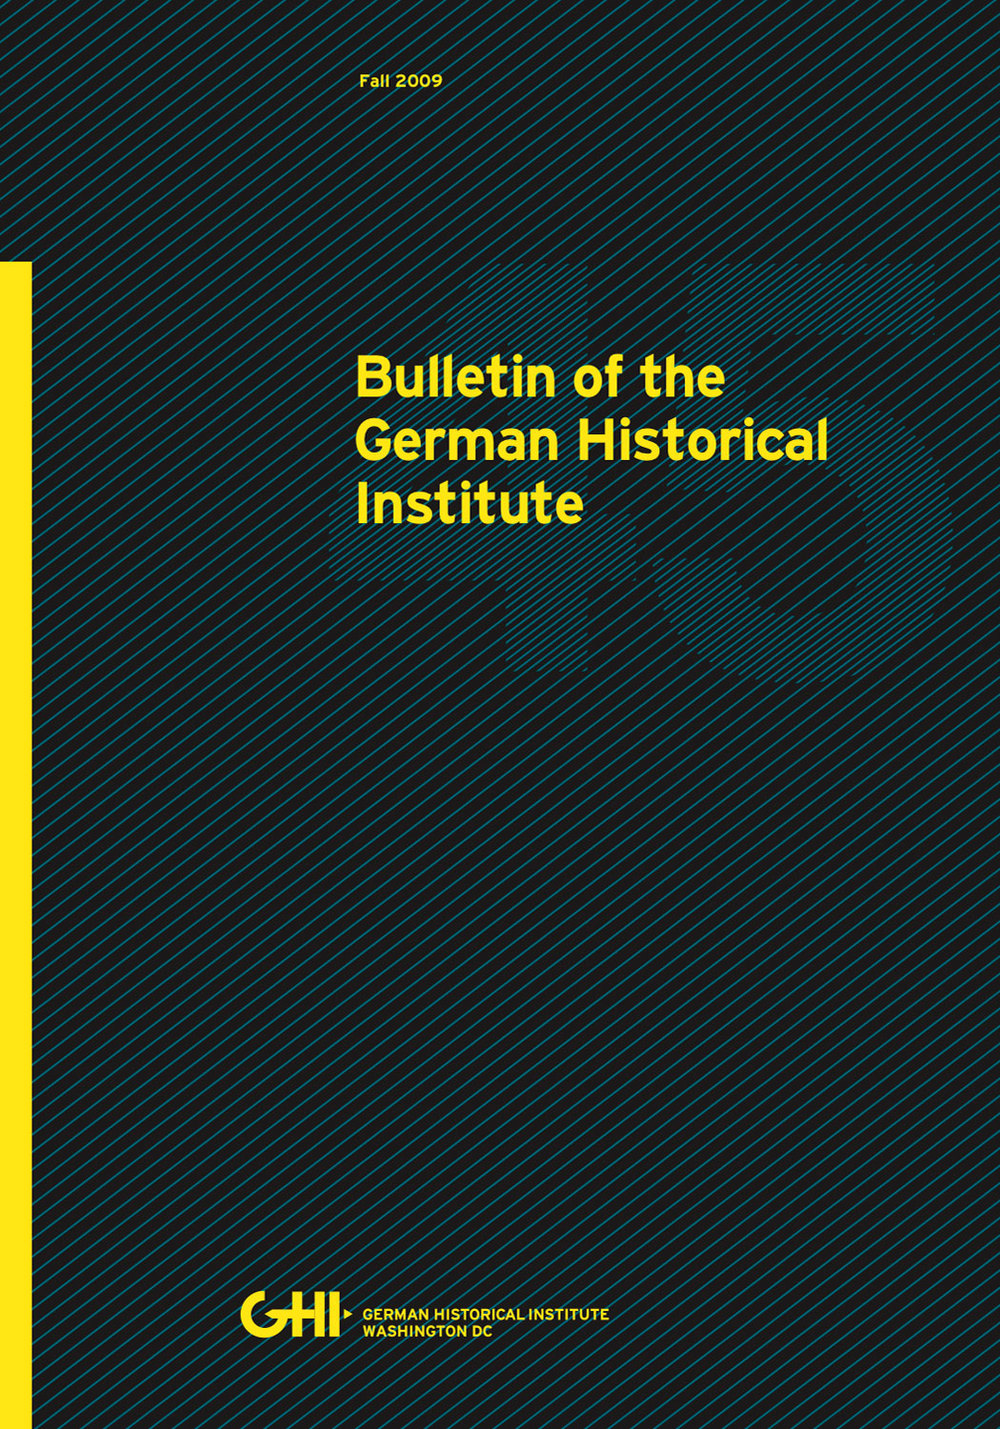 Bulletin of the German Historical Institute.jpg